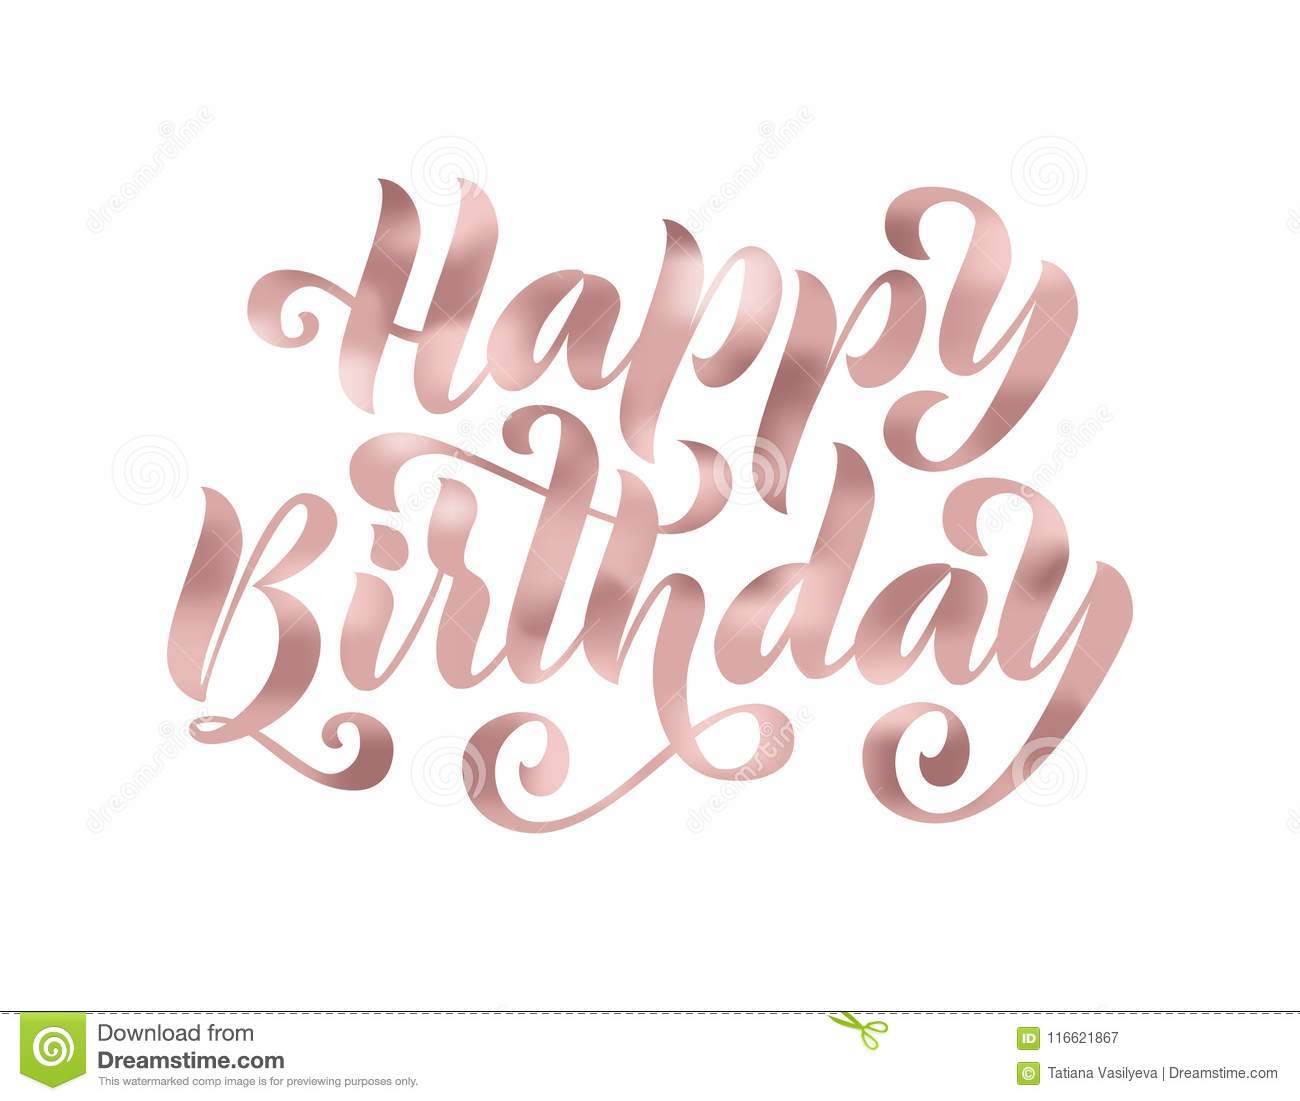 Happy Birthday Hand Drawn Lettering Card Modern Brush Calligraphy Vector Illustration Rose Gold